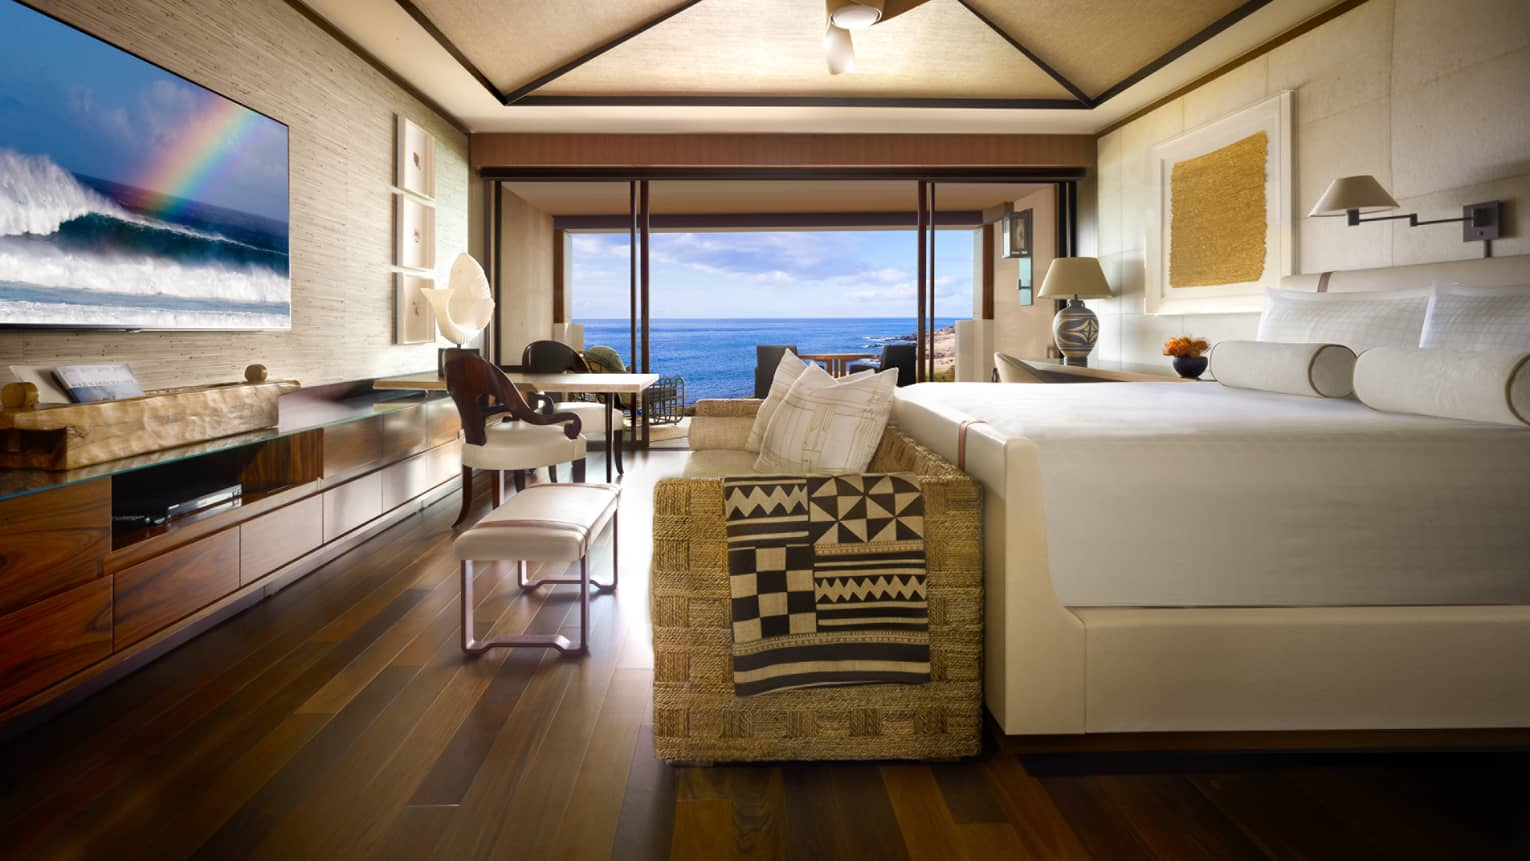 Internal view of an oceanfront room with contemporary furnishings